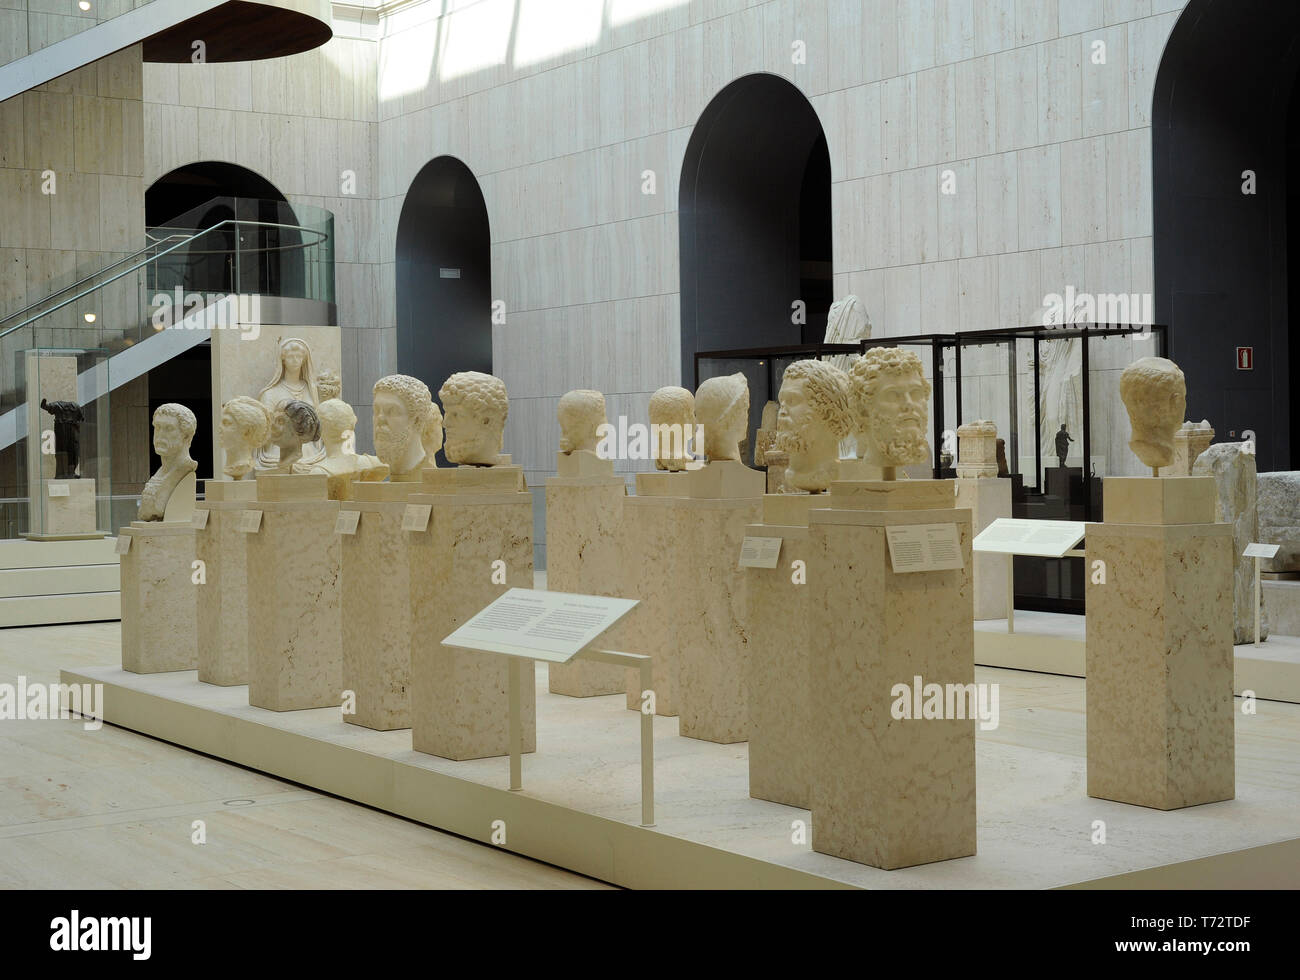 Spain. Madrid. National Archaeological Museum. Interior of a room with roman busts. - Stock Image